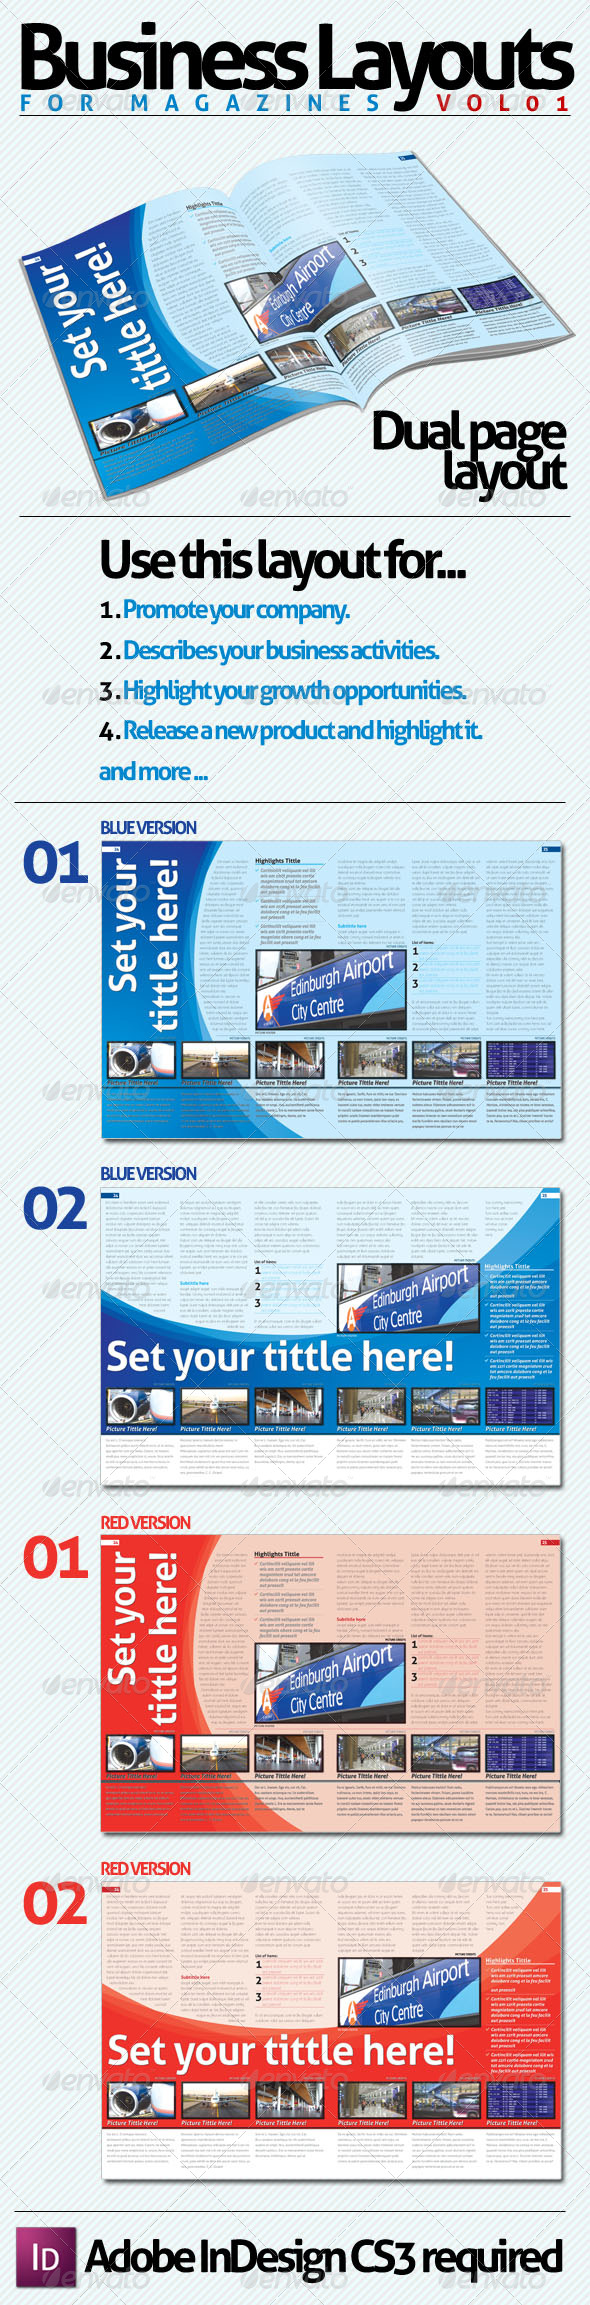 GraphicRiver Business Layouts VOL01 131655